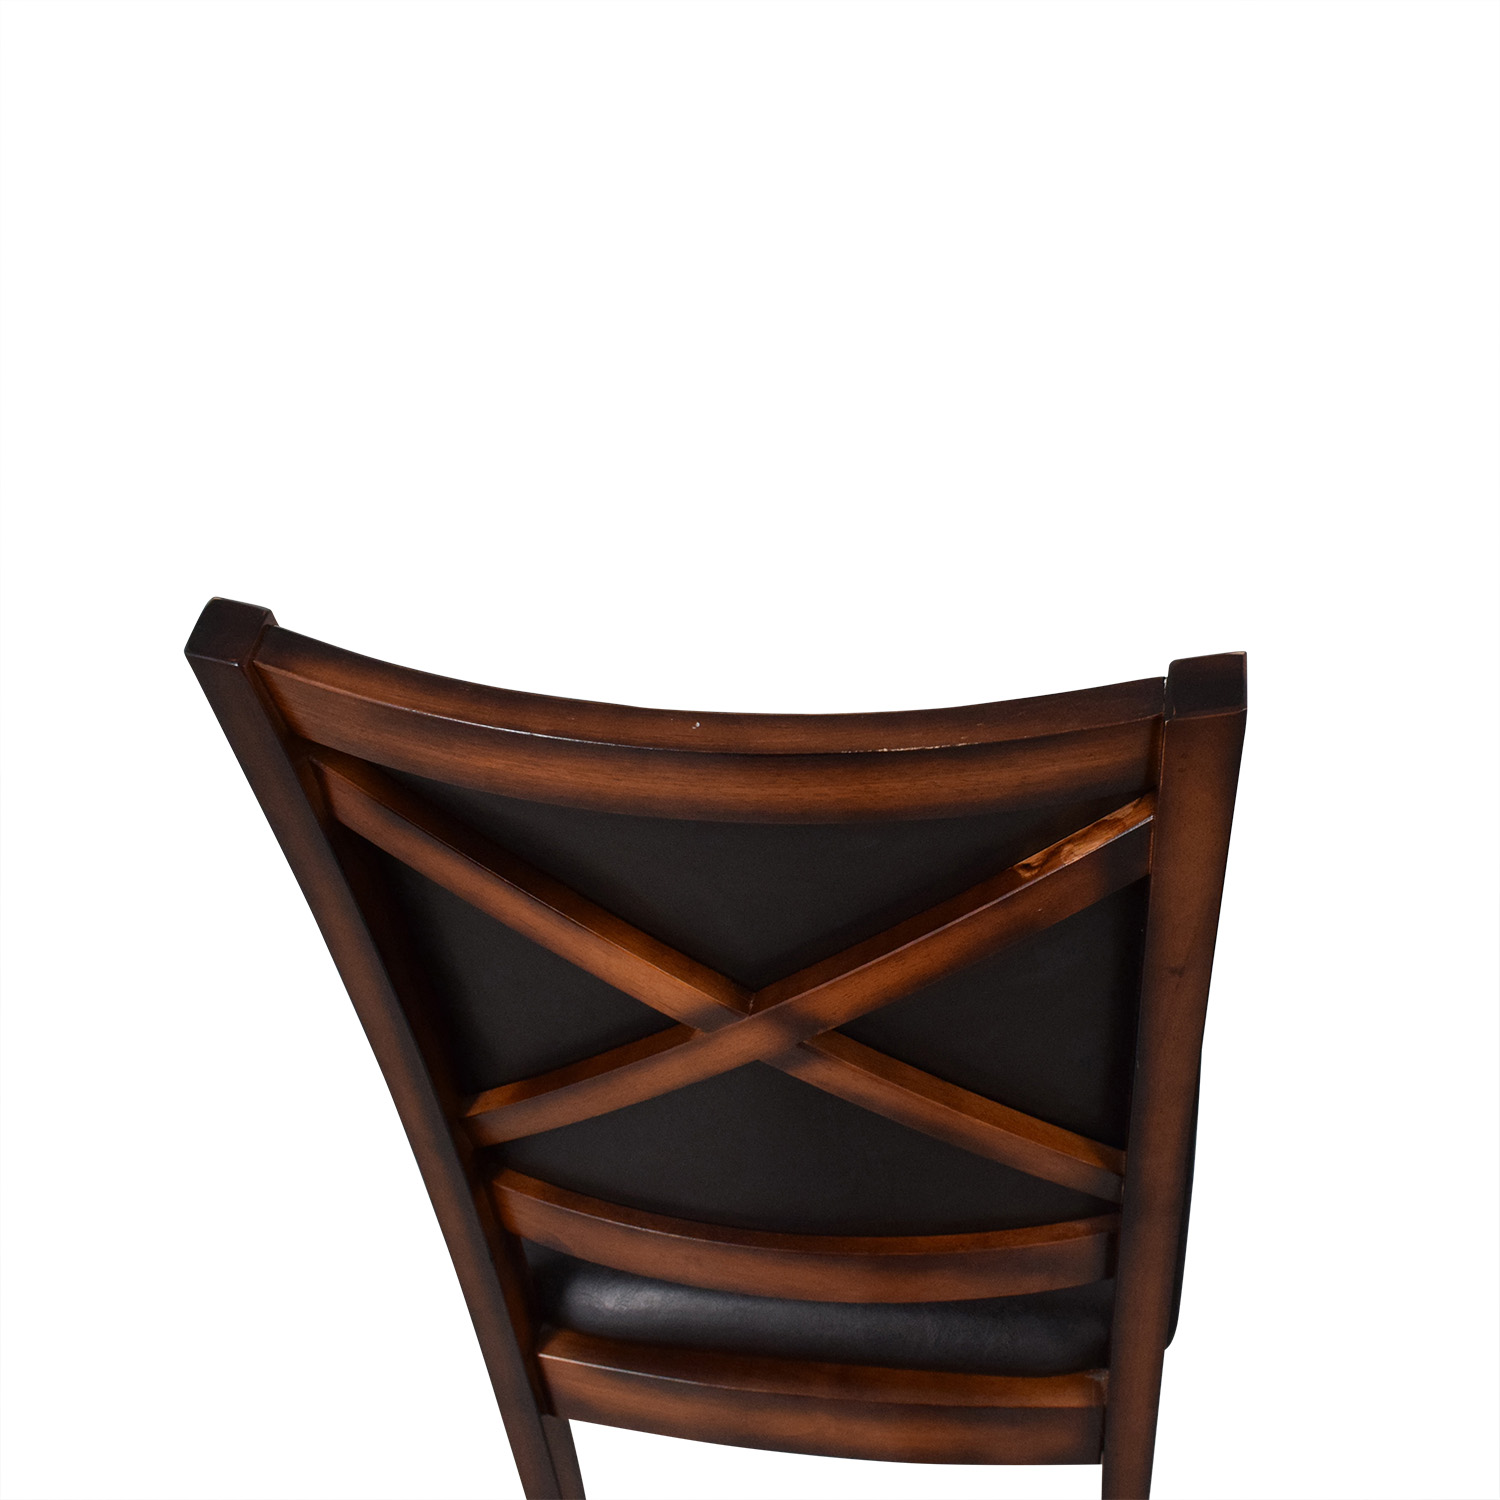 Raymour & Flanigan Upholstered Dining Chairs / Dining Chairs